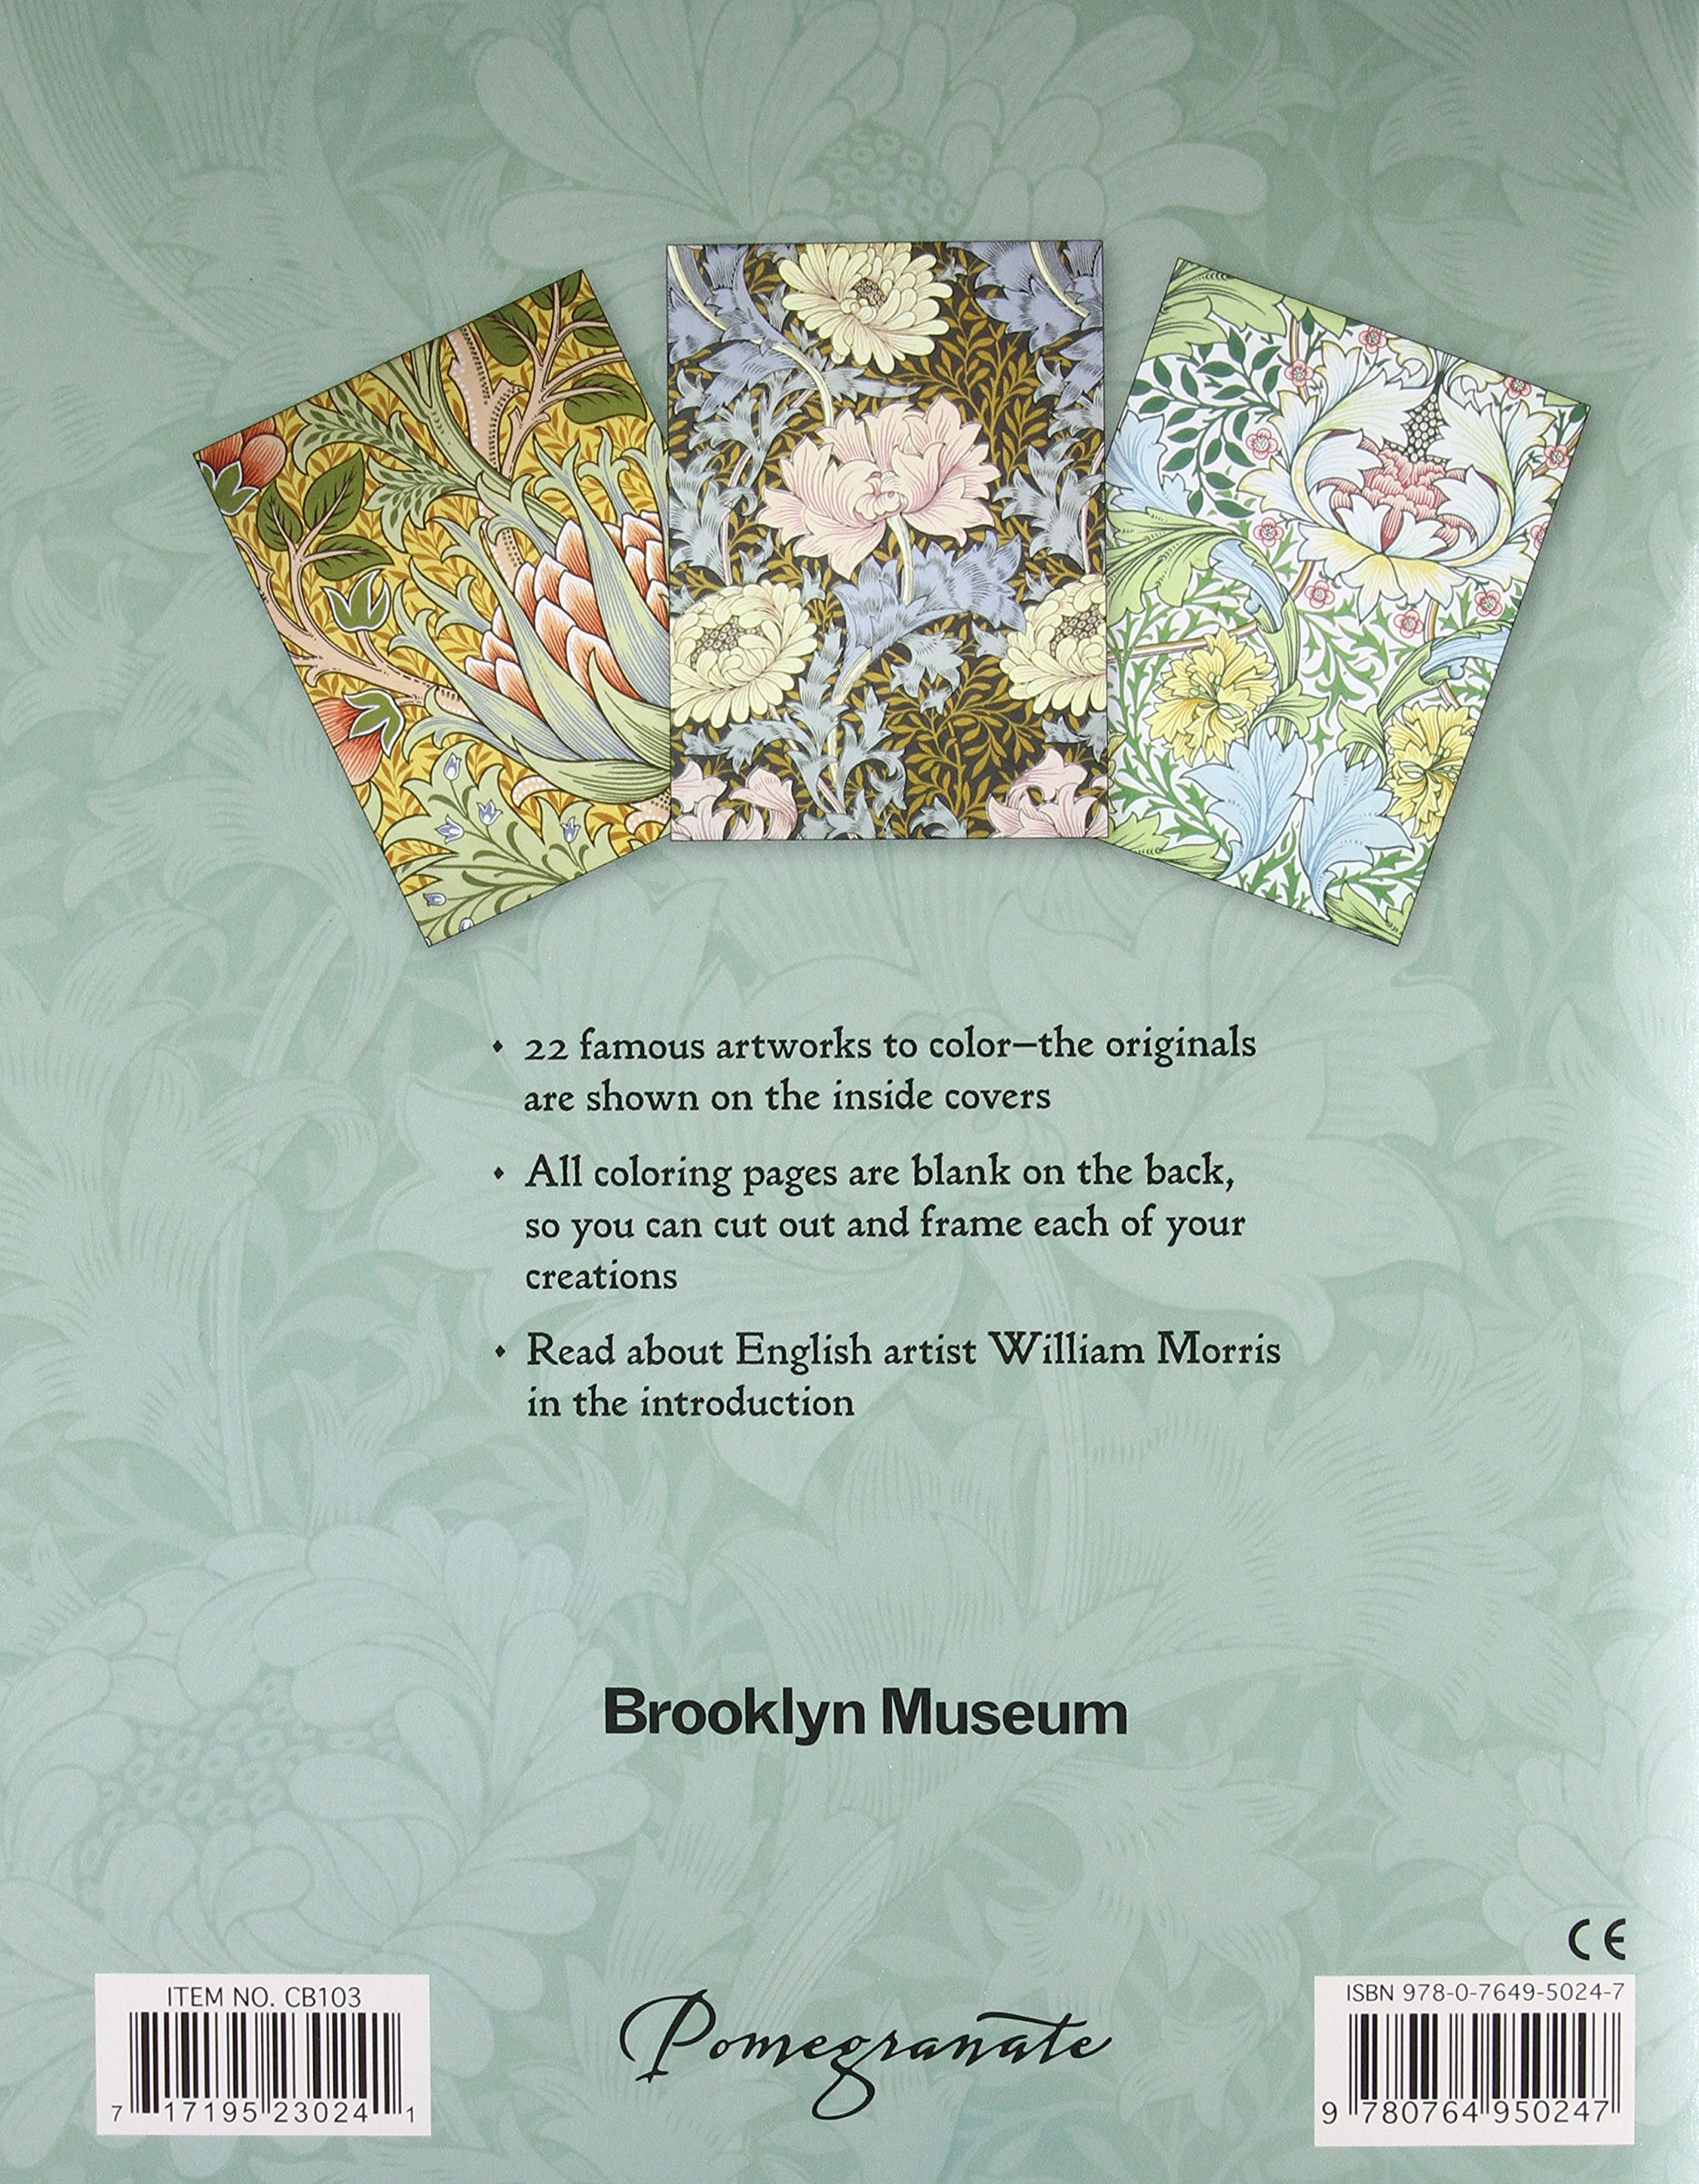 William Morris Coloring Book: Brooklyn Museum of Art: 9780764950247 ...